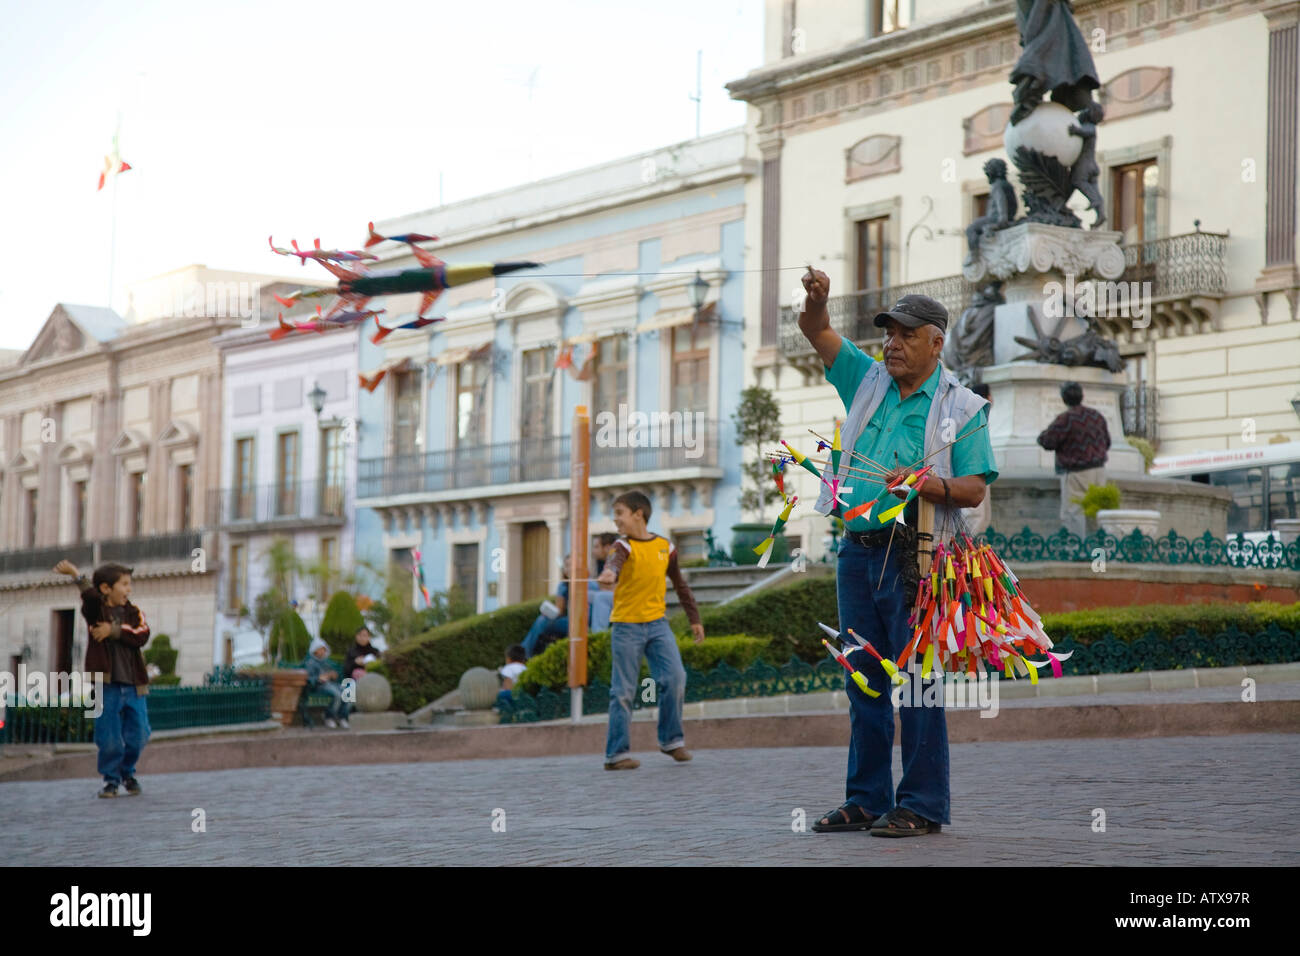 MEXICO Guanajuato Mexican man selling whirligig toys in Peace Plaza Plaza de la Paz spinning toys on string in air Stock Photo